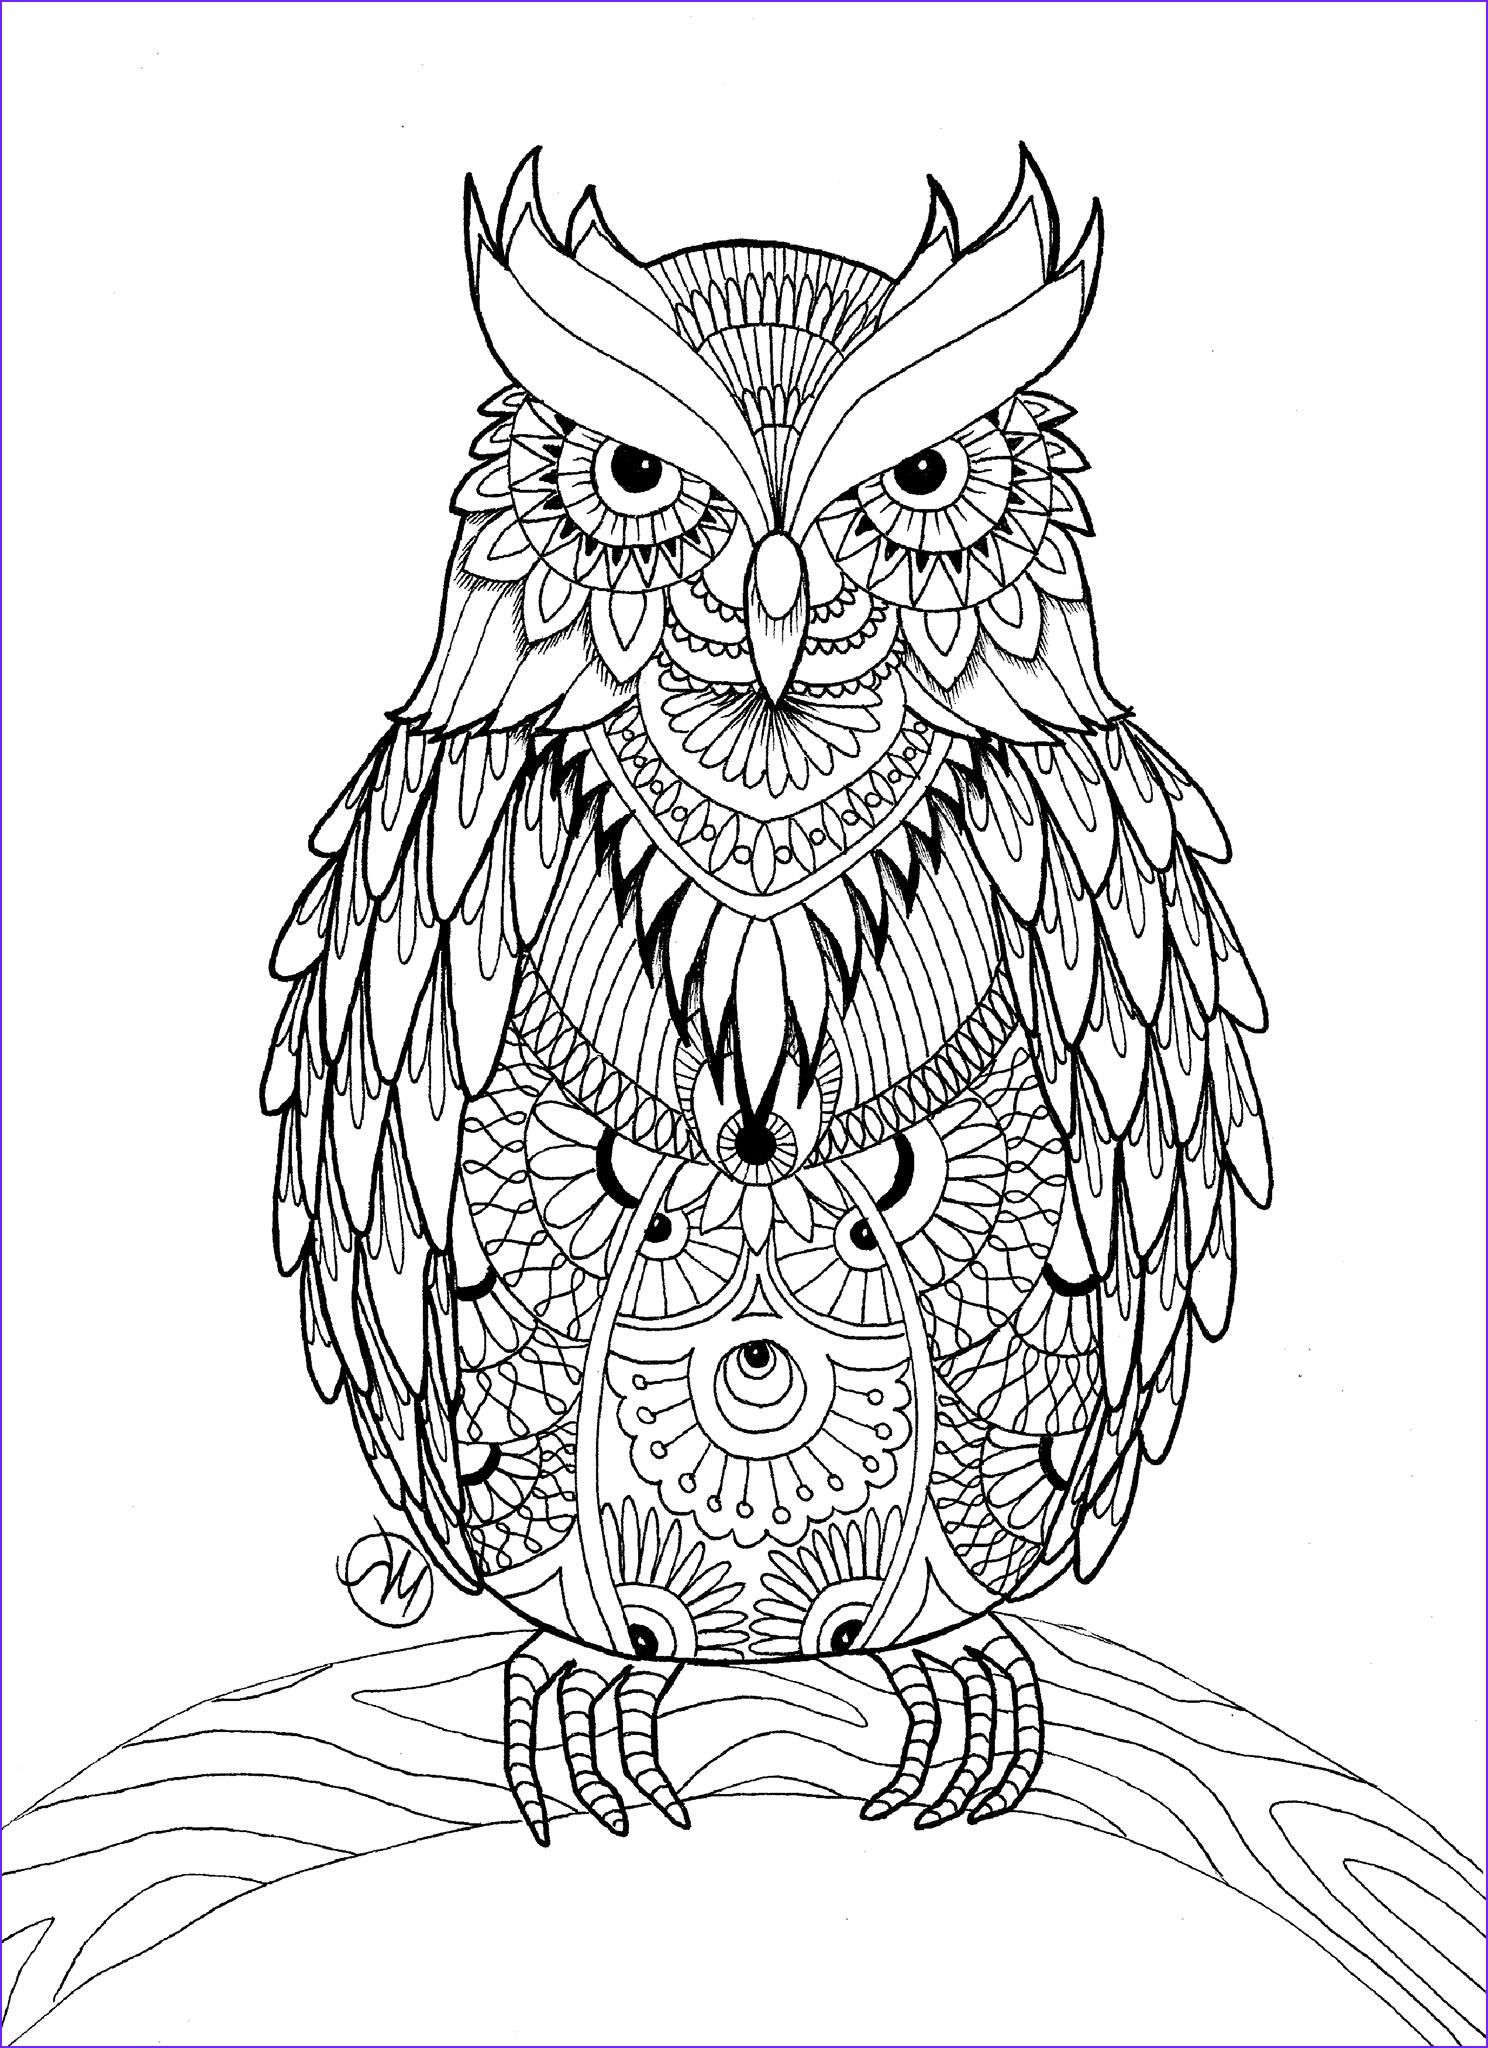 Coloring Adult Inspirational Stock Owl Coloring Pages for Adults Free Detailed Owl Coloring